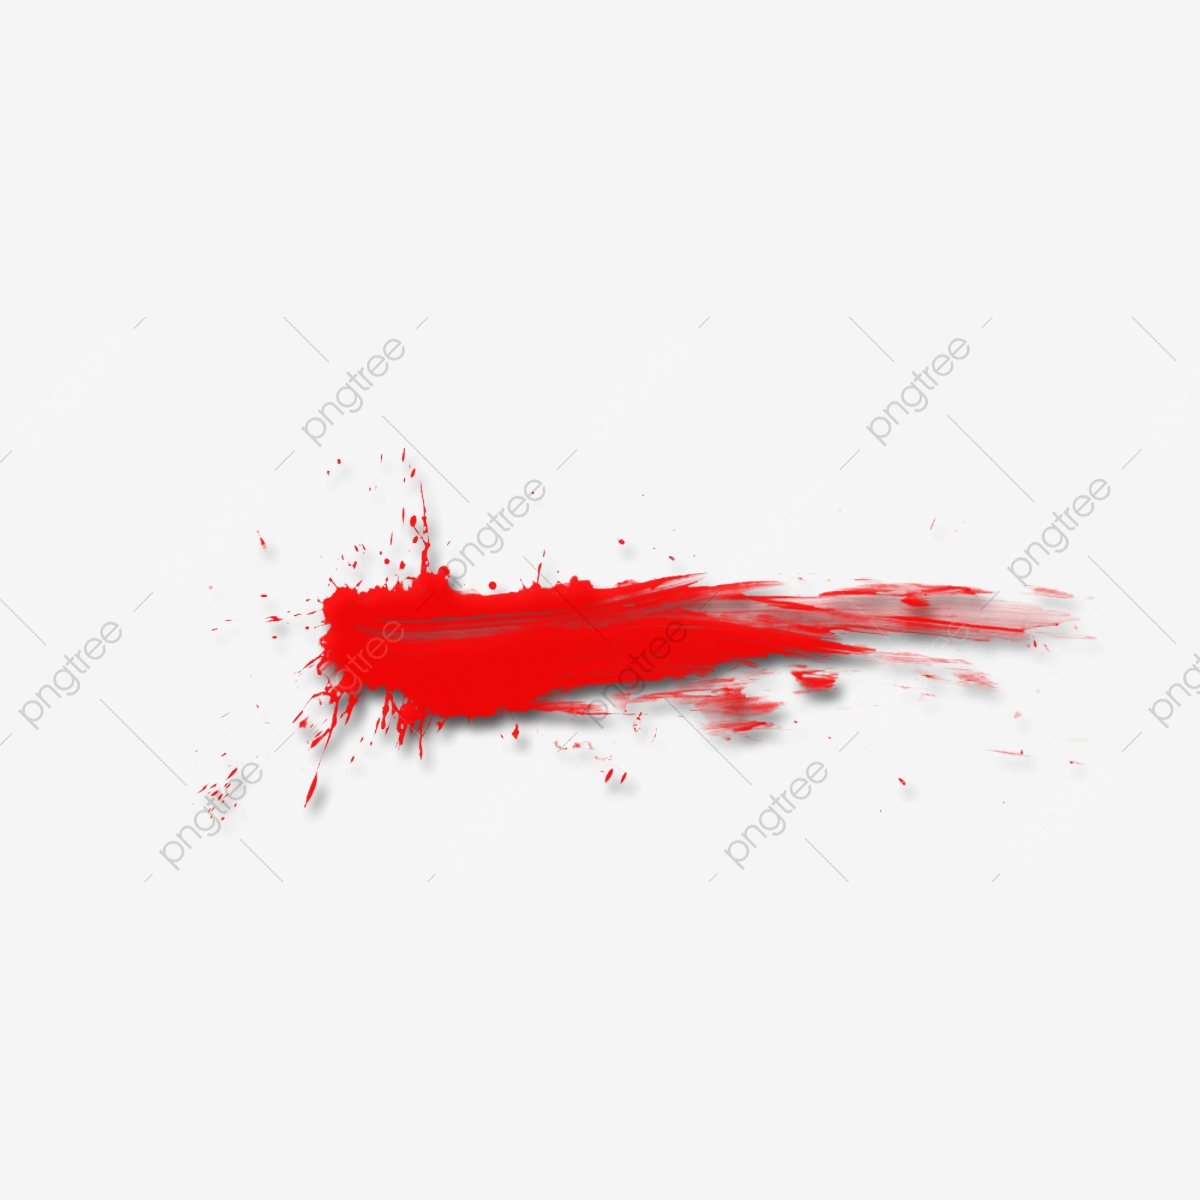 Watercolor Splash Blood Hand Brush Bloodstain, Red, Blood